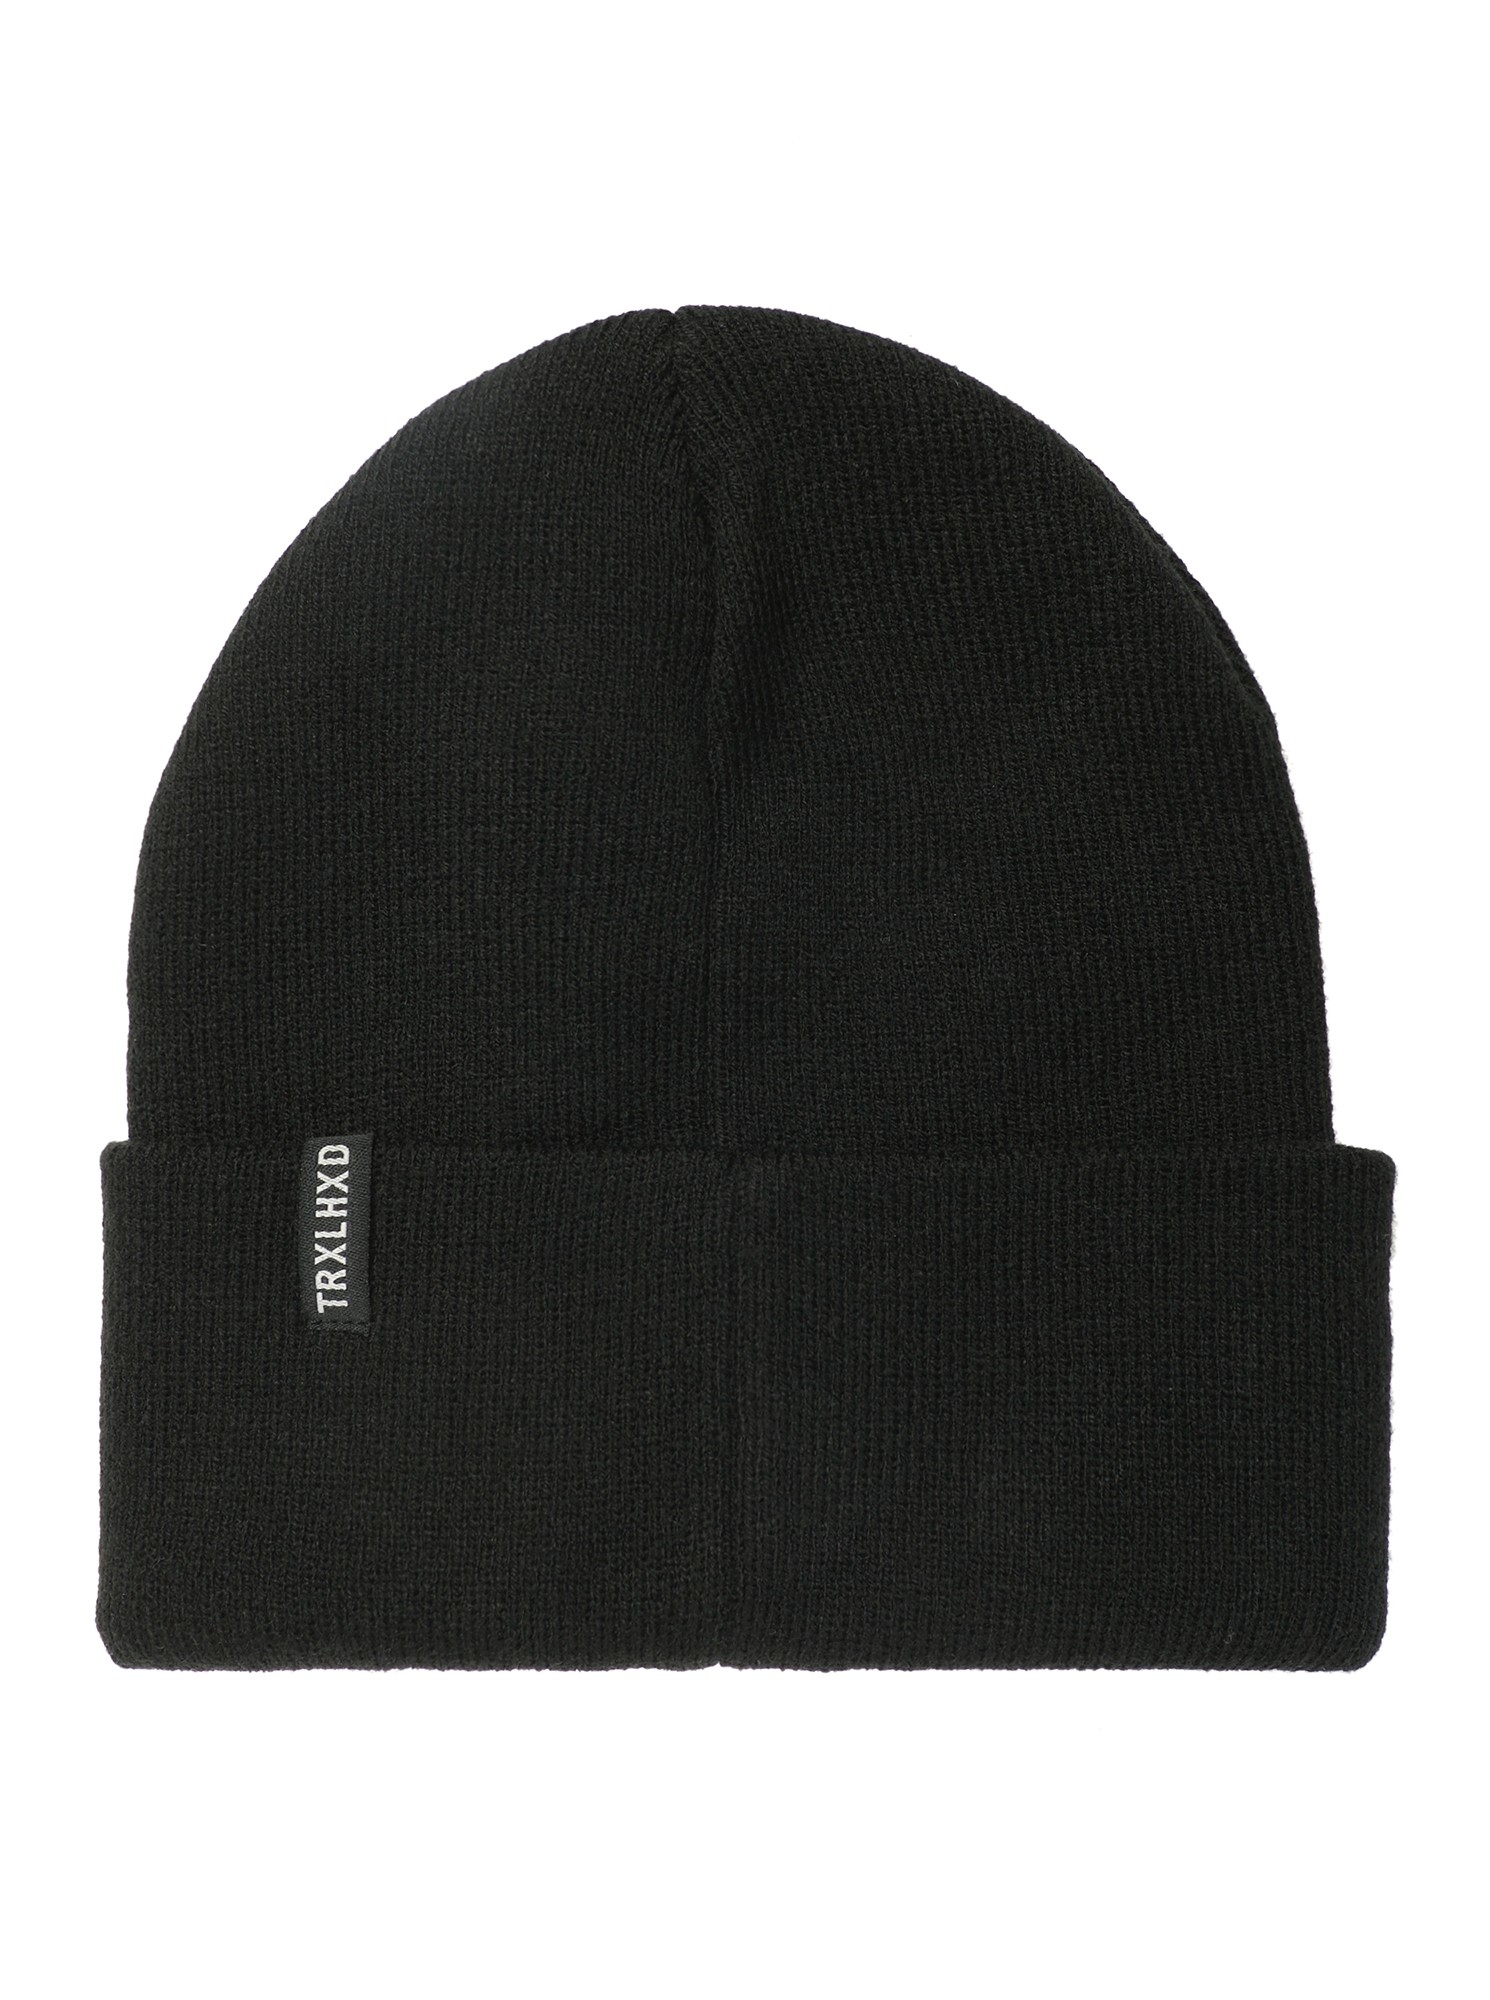 Шапка TRAILHEAD HAT19-PTH-BEAT-BK, HAT19-PTH-BEAT, фото 3